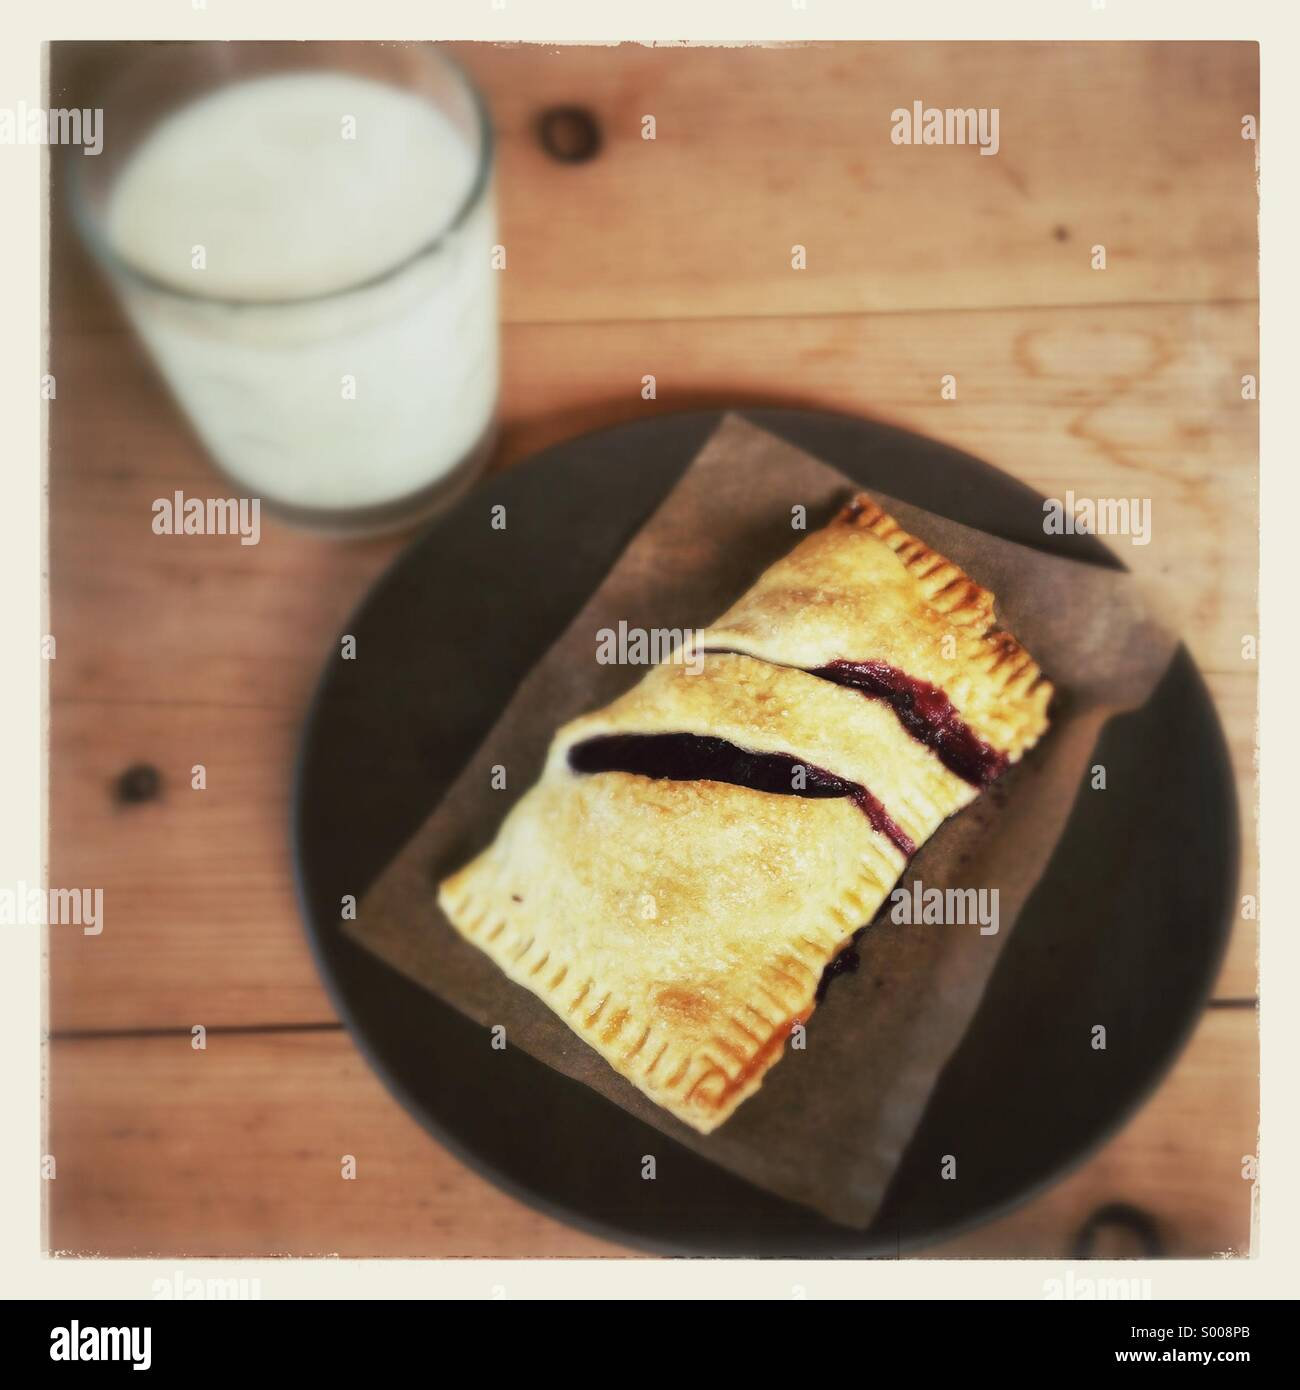 Blueberry hand pie - Stock Image